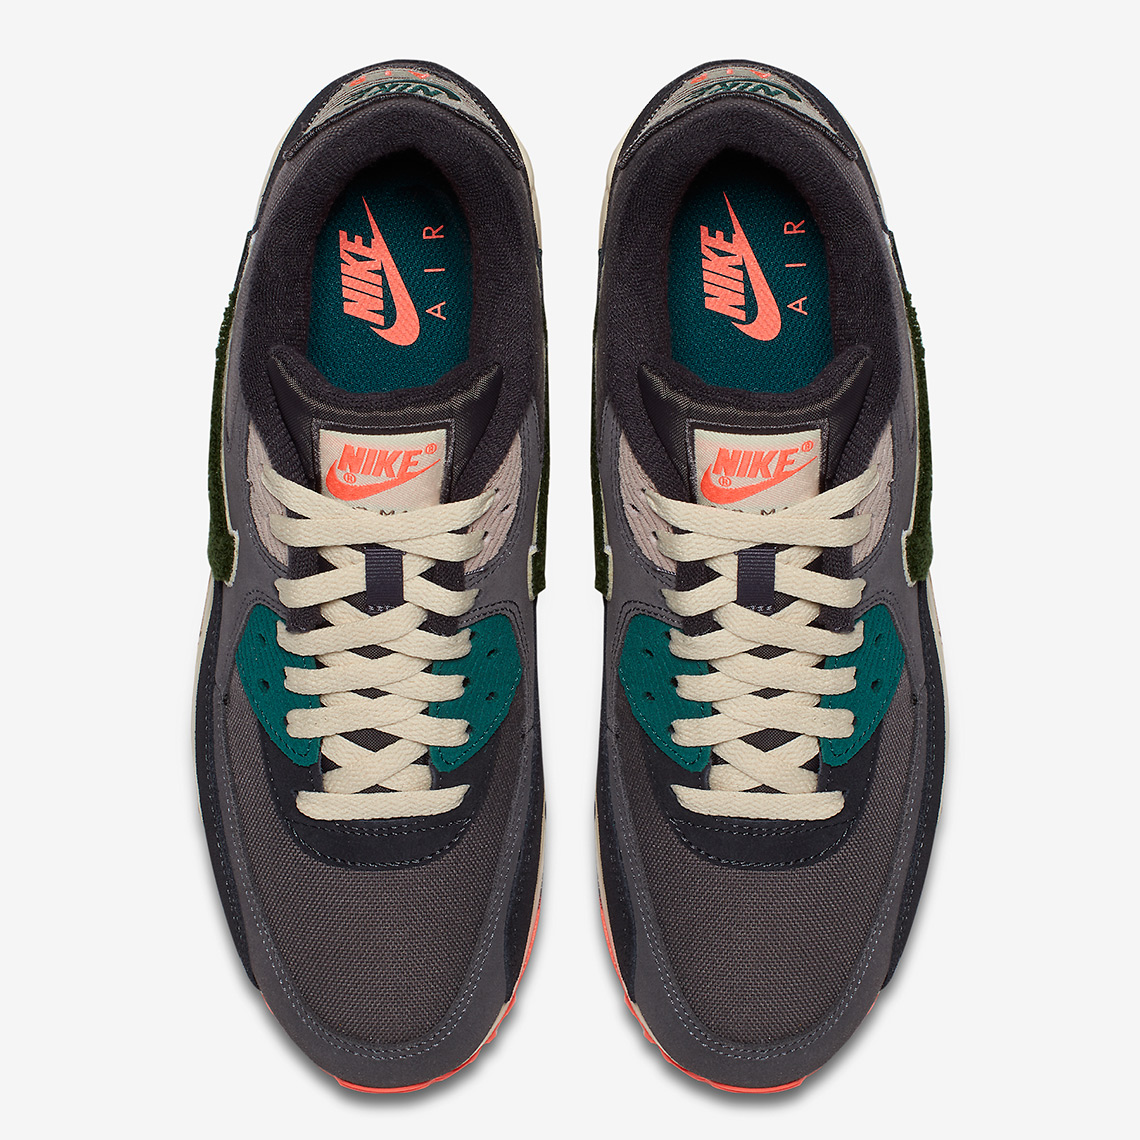 Nike Air Max 90 858954 002 Chenille Release Info